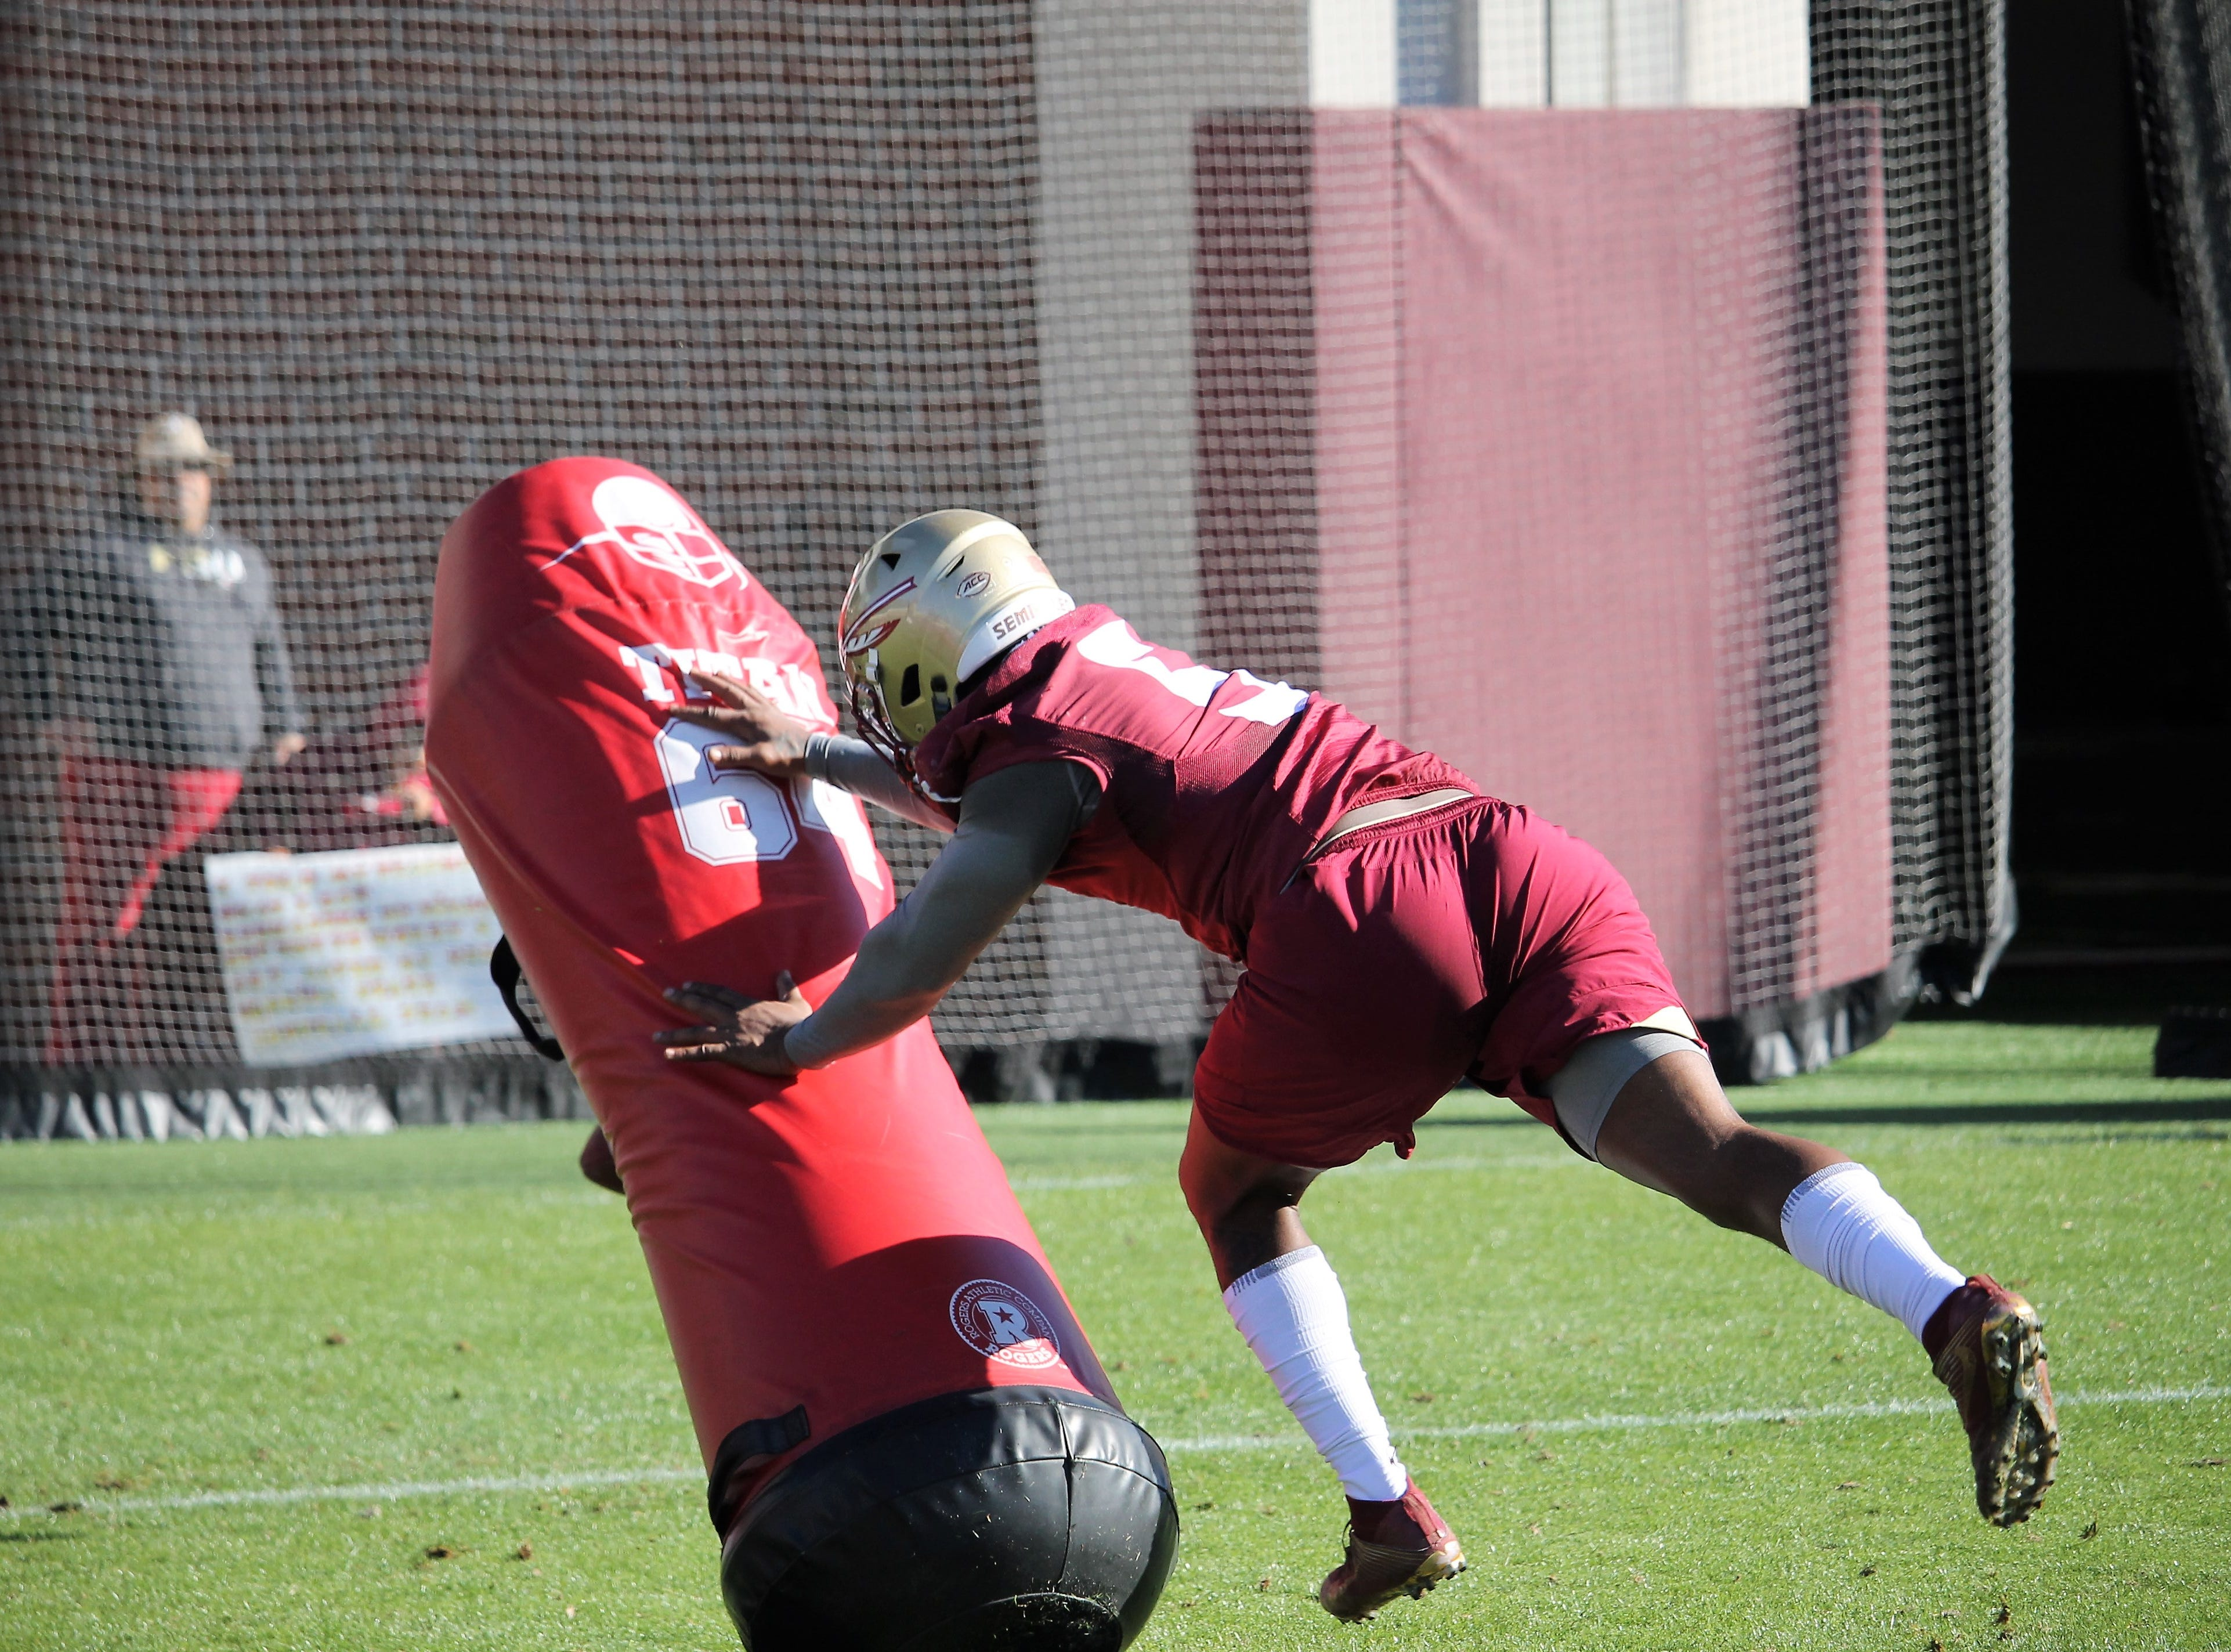 Linebacker Dontavious Jackson at FSU football practice on March 6, 2019.